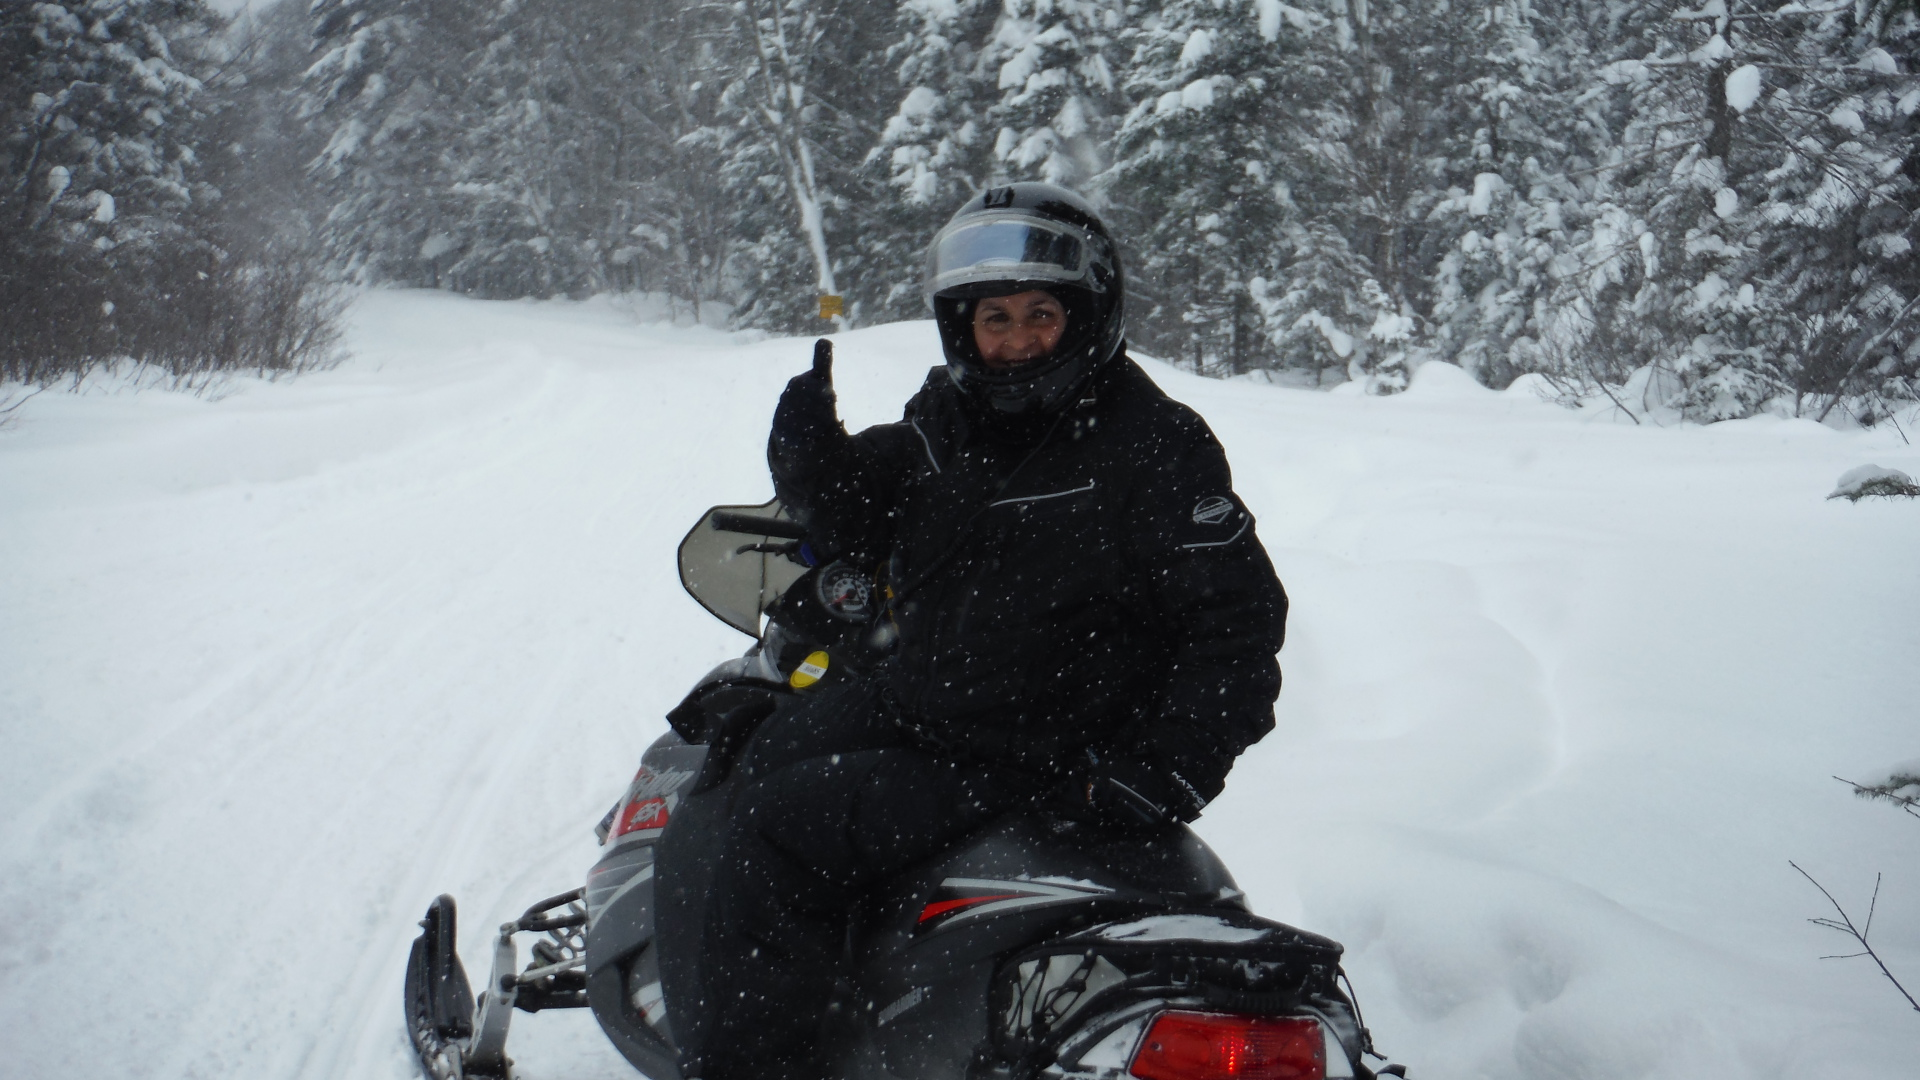 Debbie on her snowmobile